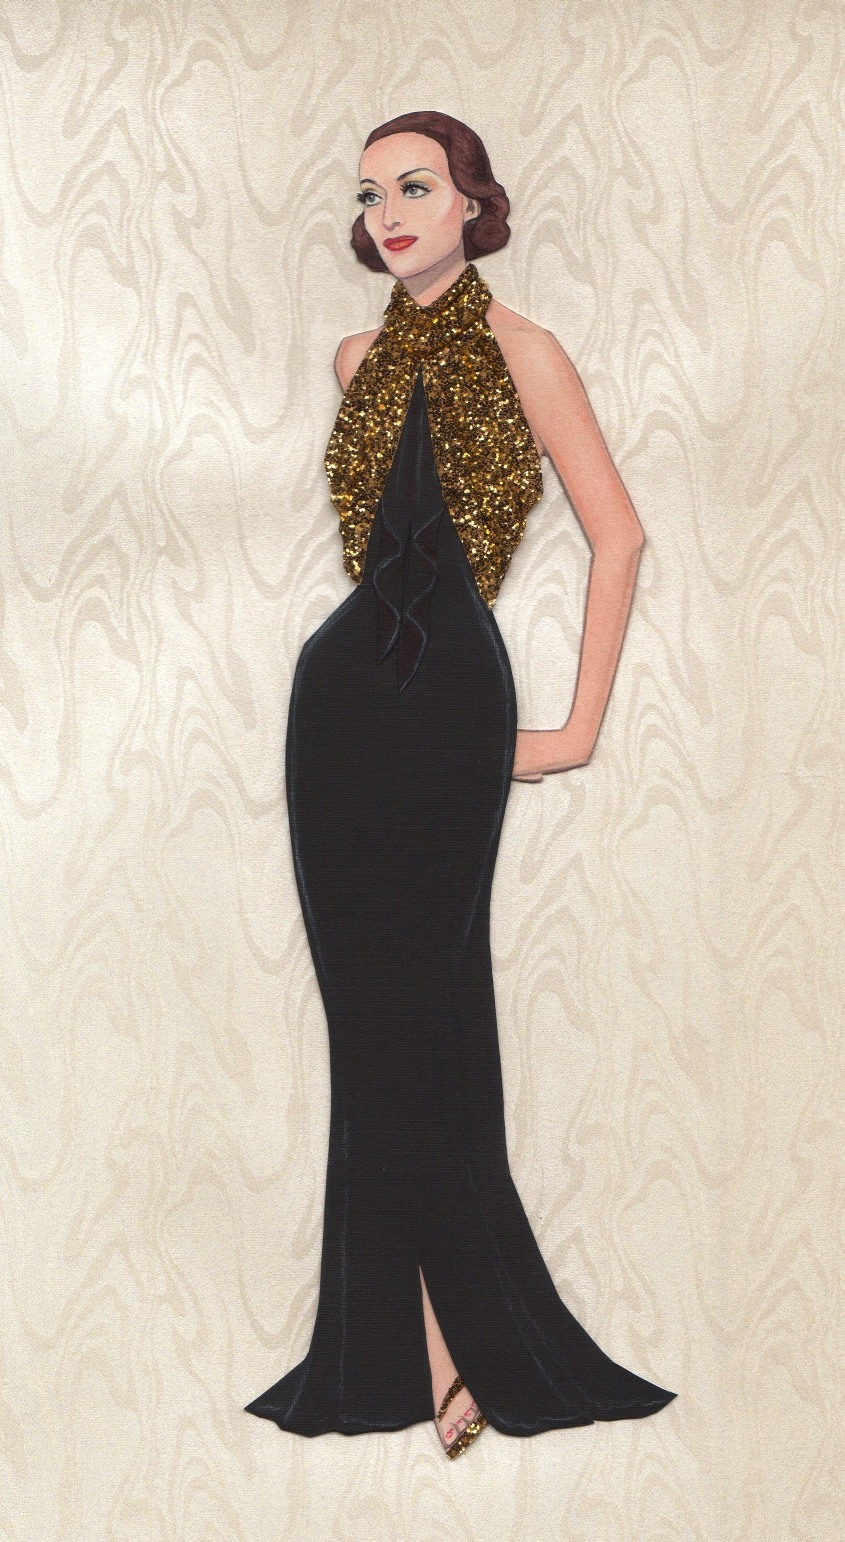 paper dolls kirkwood 0 followers, 86 following, 1 posts - see instagram photos and videos from paperdolls (@pdshopgirl.